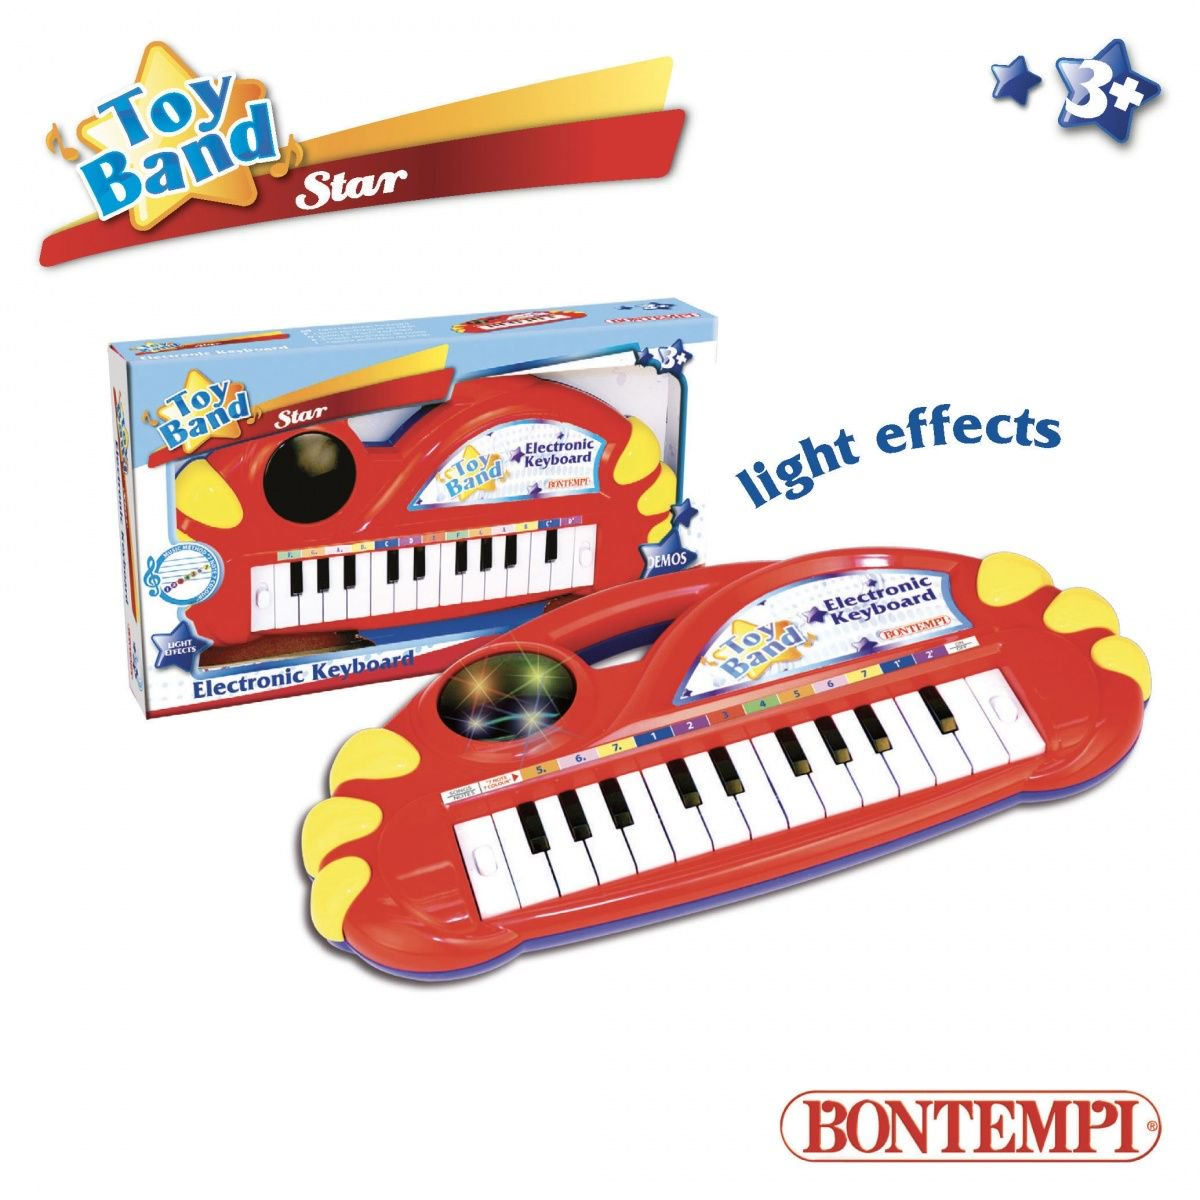 Dante Bontempi Star 22 Key elektoronic keybord with flashing ball (041-33117) 041-33117